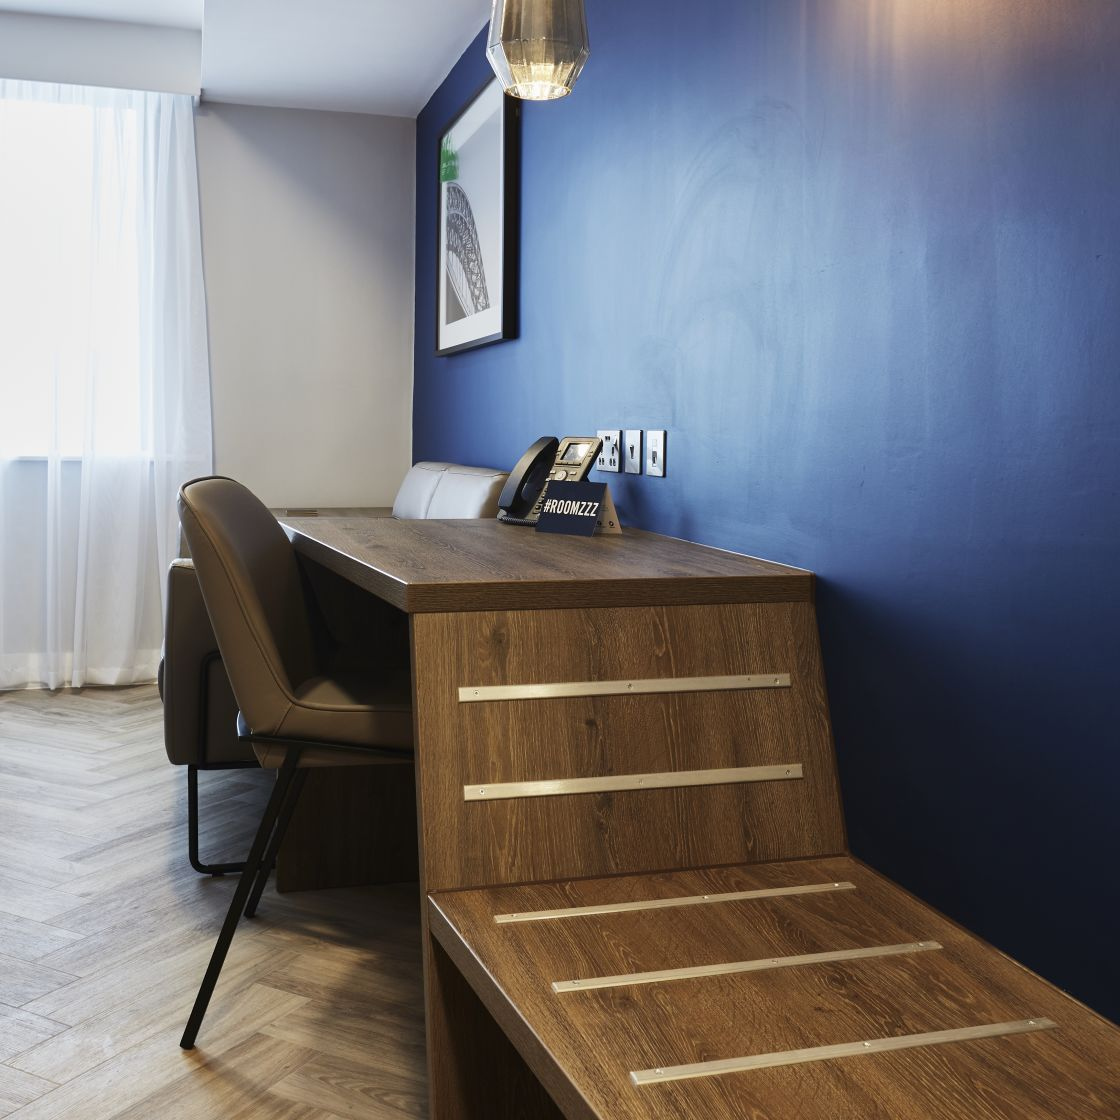 Smart Studio Student Apartment in Newcastle with Desk and study space. IconInc @ Roomzzz